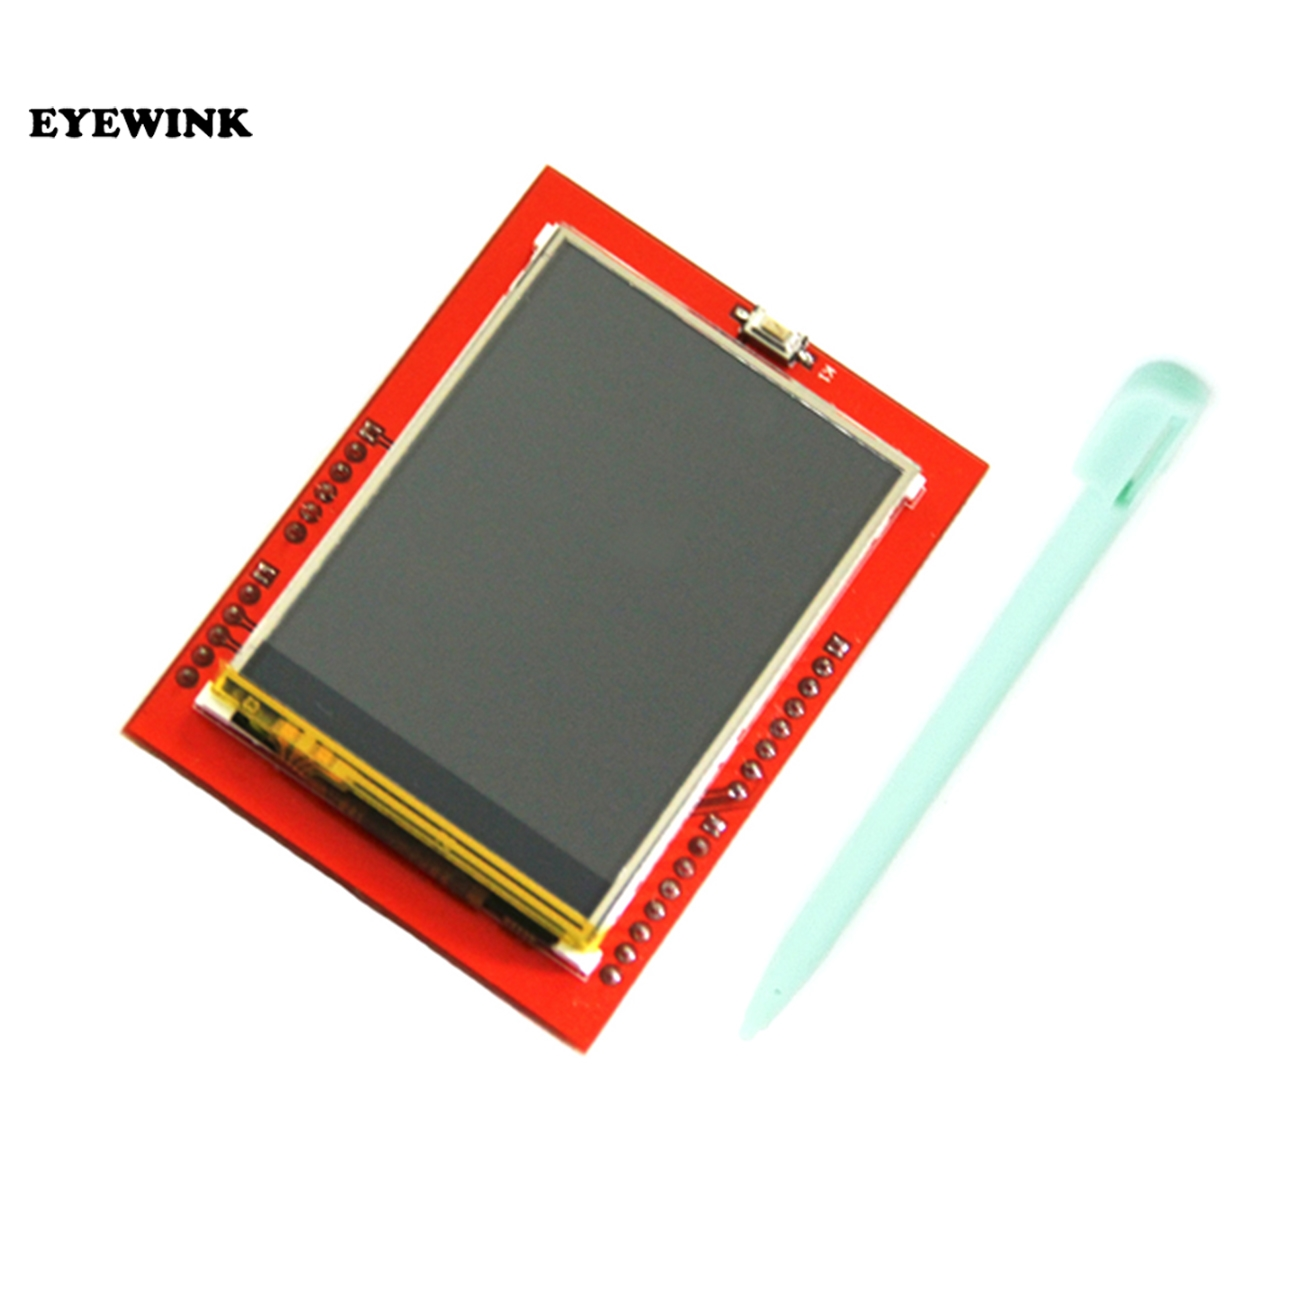 10pcs High quality LCD module TFT 2 4 inch TFT LCD screen for Arduino UNO R3